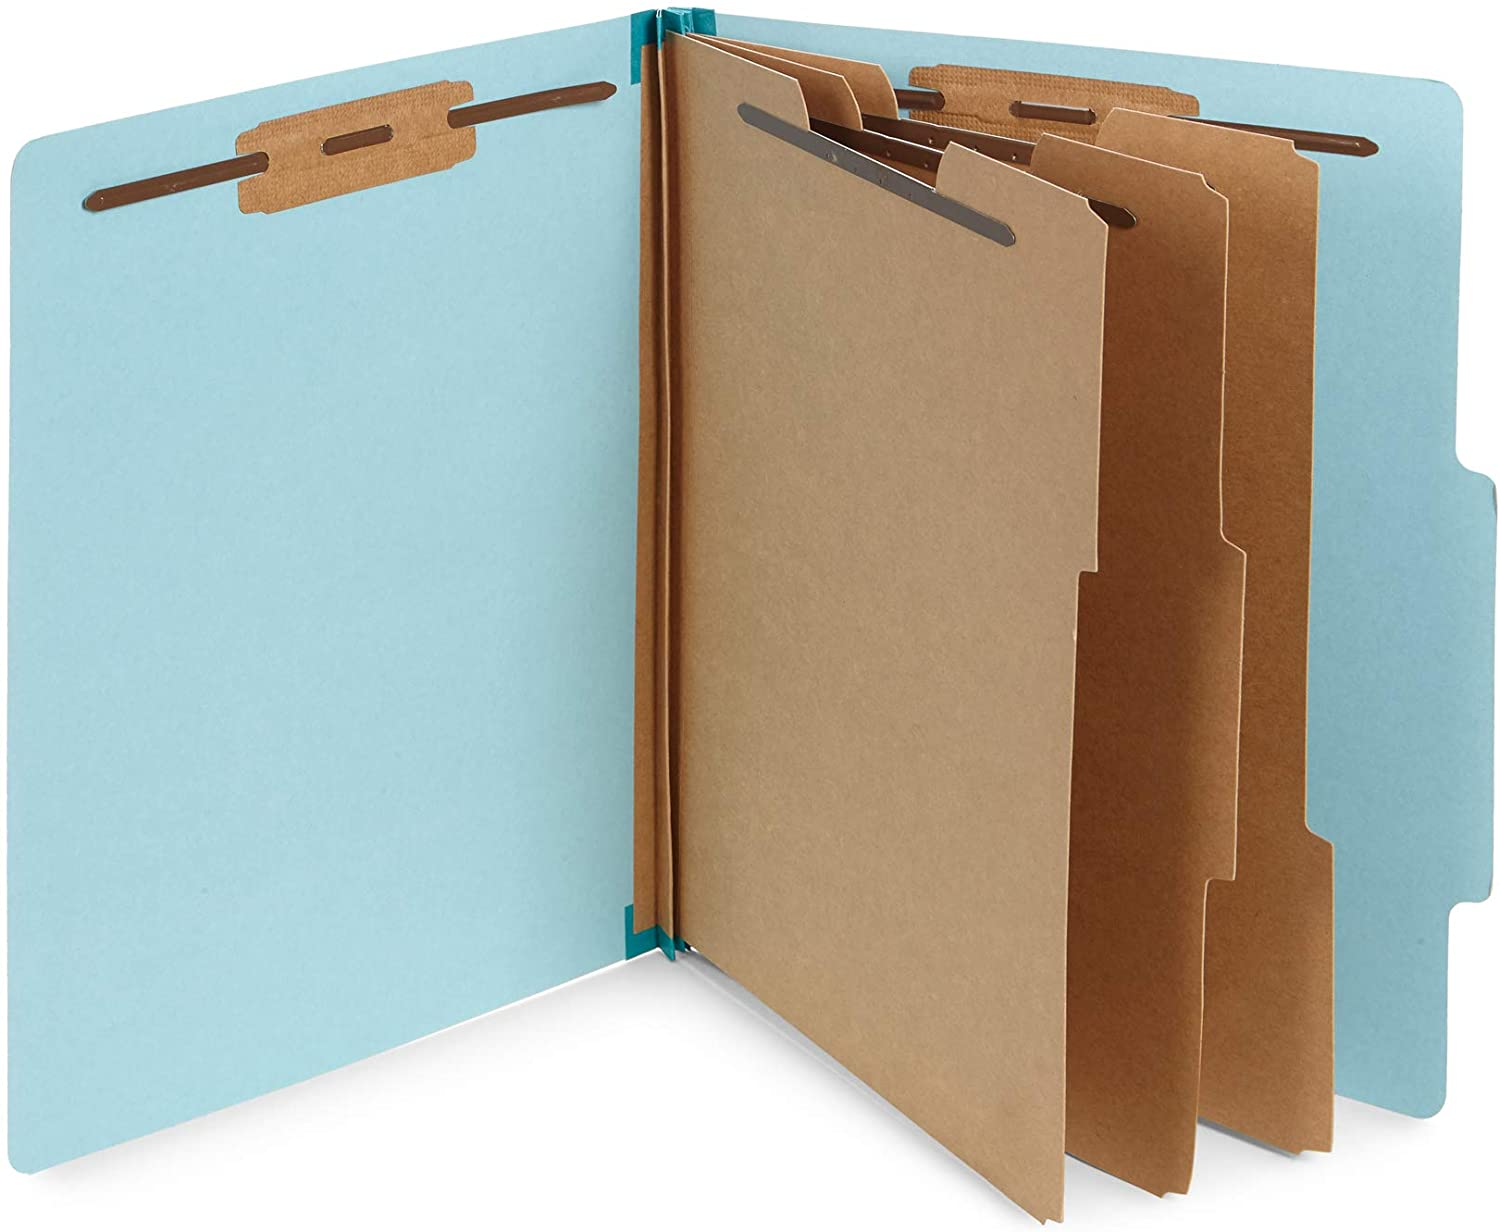 Blue Summit Supplies Light Blue Classification Folders, 3 Dividers, Letter Size with 2 Inch Tyvek Expansions, 8 Section Light Blue Classification Folder, 10 Pack